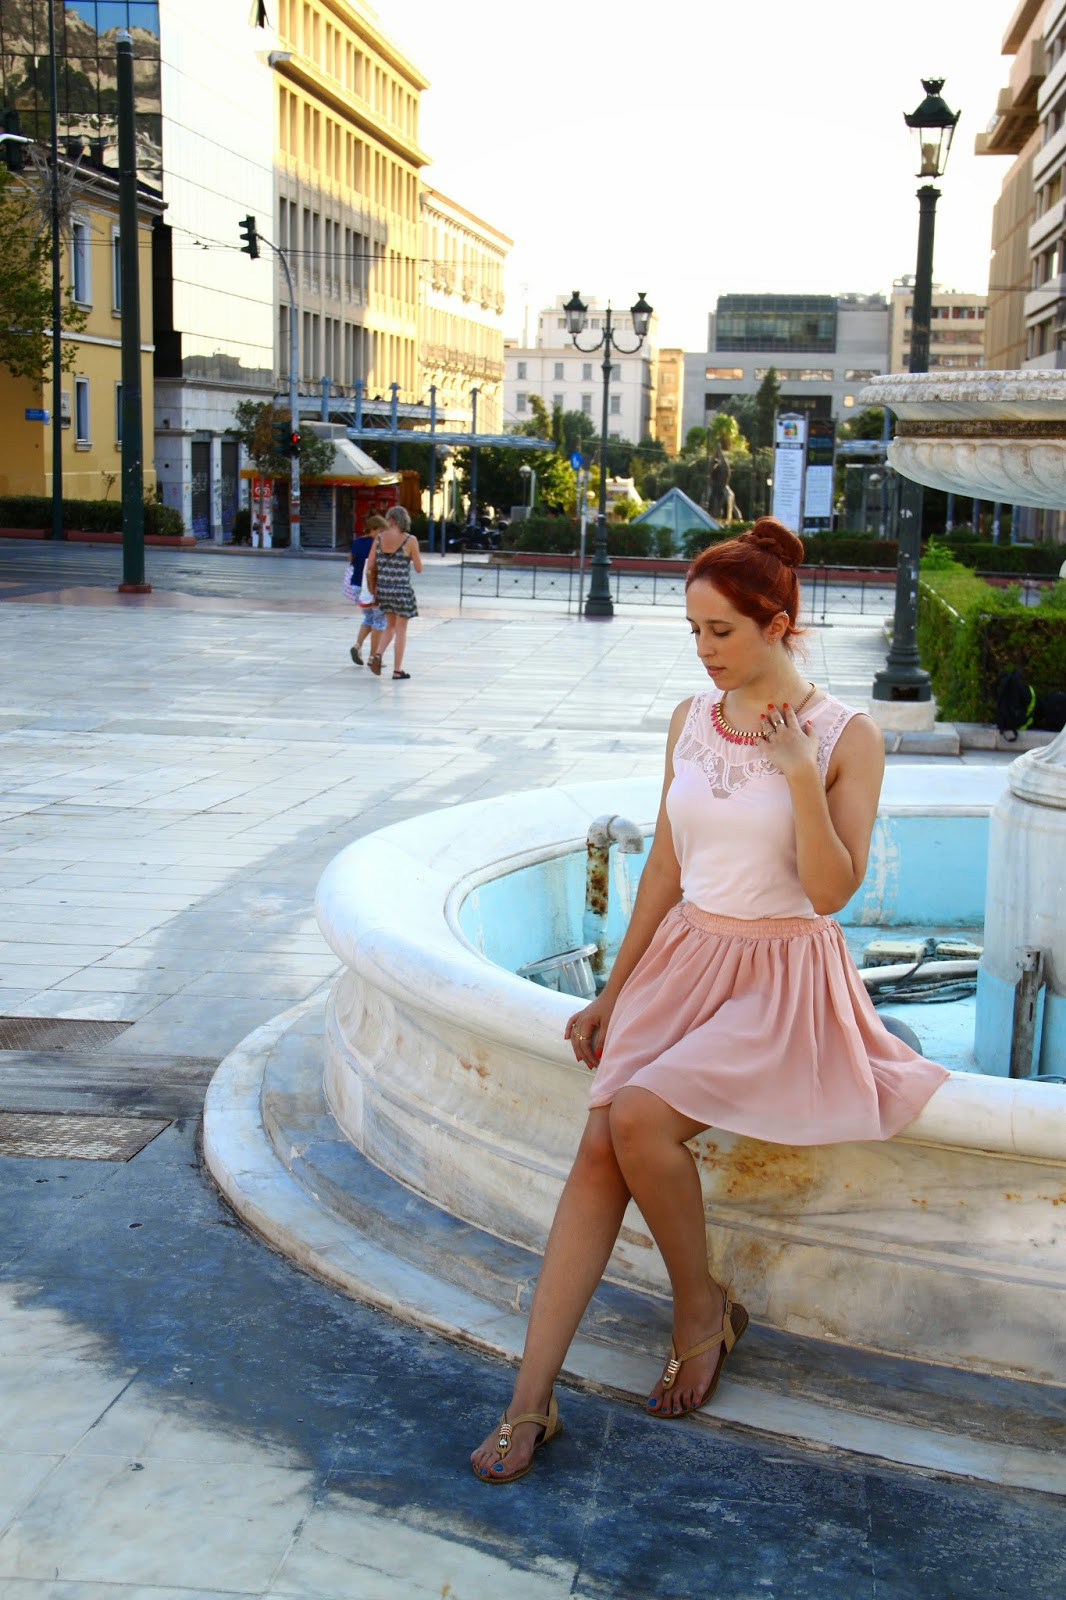 Redhead, spotlights on the redhead, Anna Keni, outfit, oasap, bershka, style b4 fashion, ,fashion,model,blogger, jewelry,  review, beige, spring, 2014, pink,magenta,summer, autumn